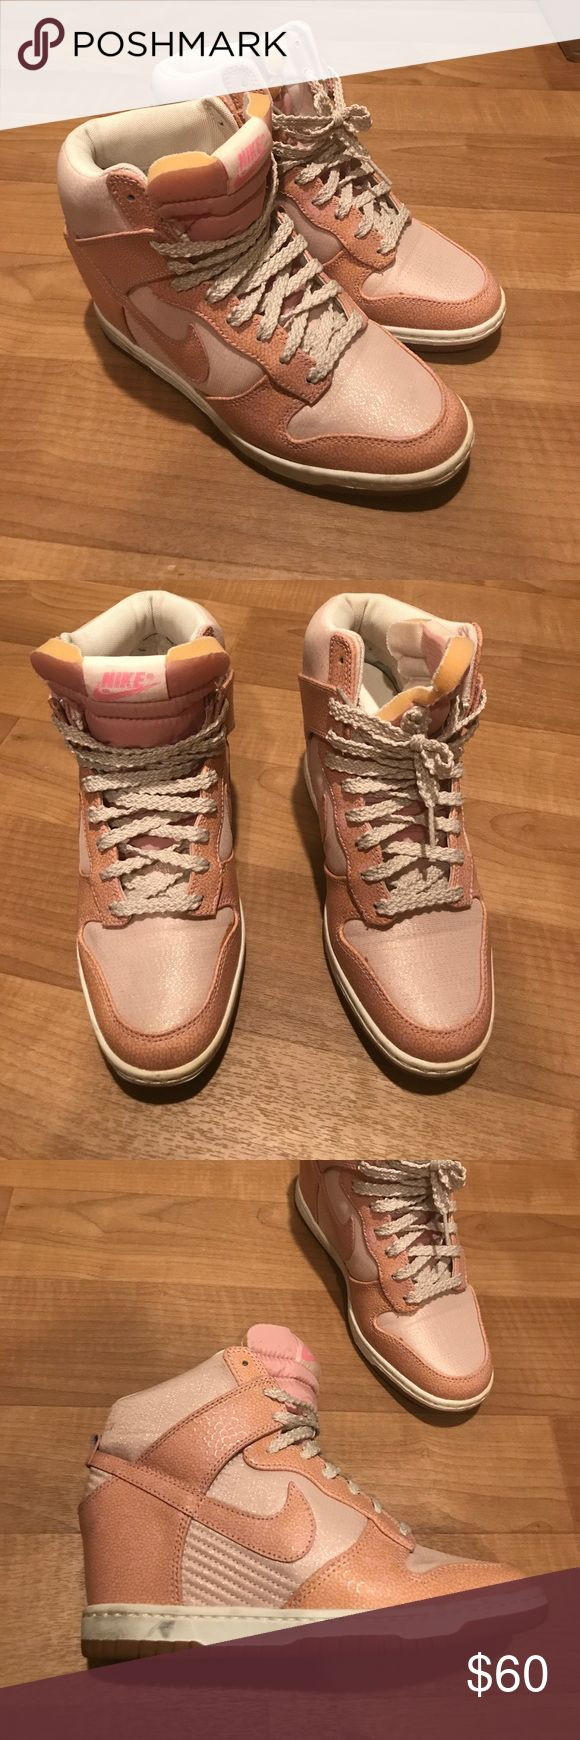 PINK NIKE DUNK SKY HIGH Sneakers LIKE NEW, pink Nike sneakers. Girly but with an edge. Has a hidden wedge to enhance height! Purchased at Nordstrom for $130, selling for $60. Great for everyday outfits Nike Shoes Sneakers